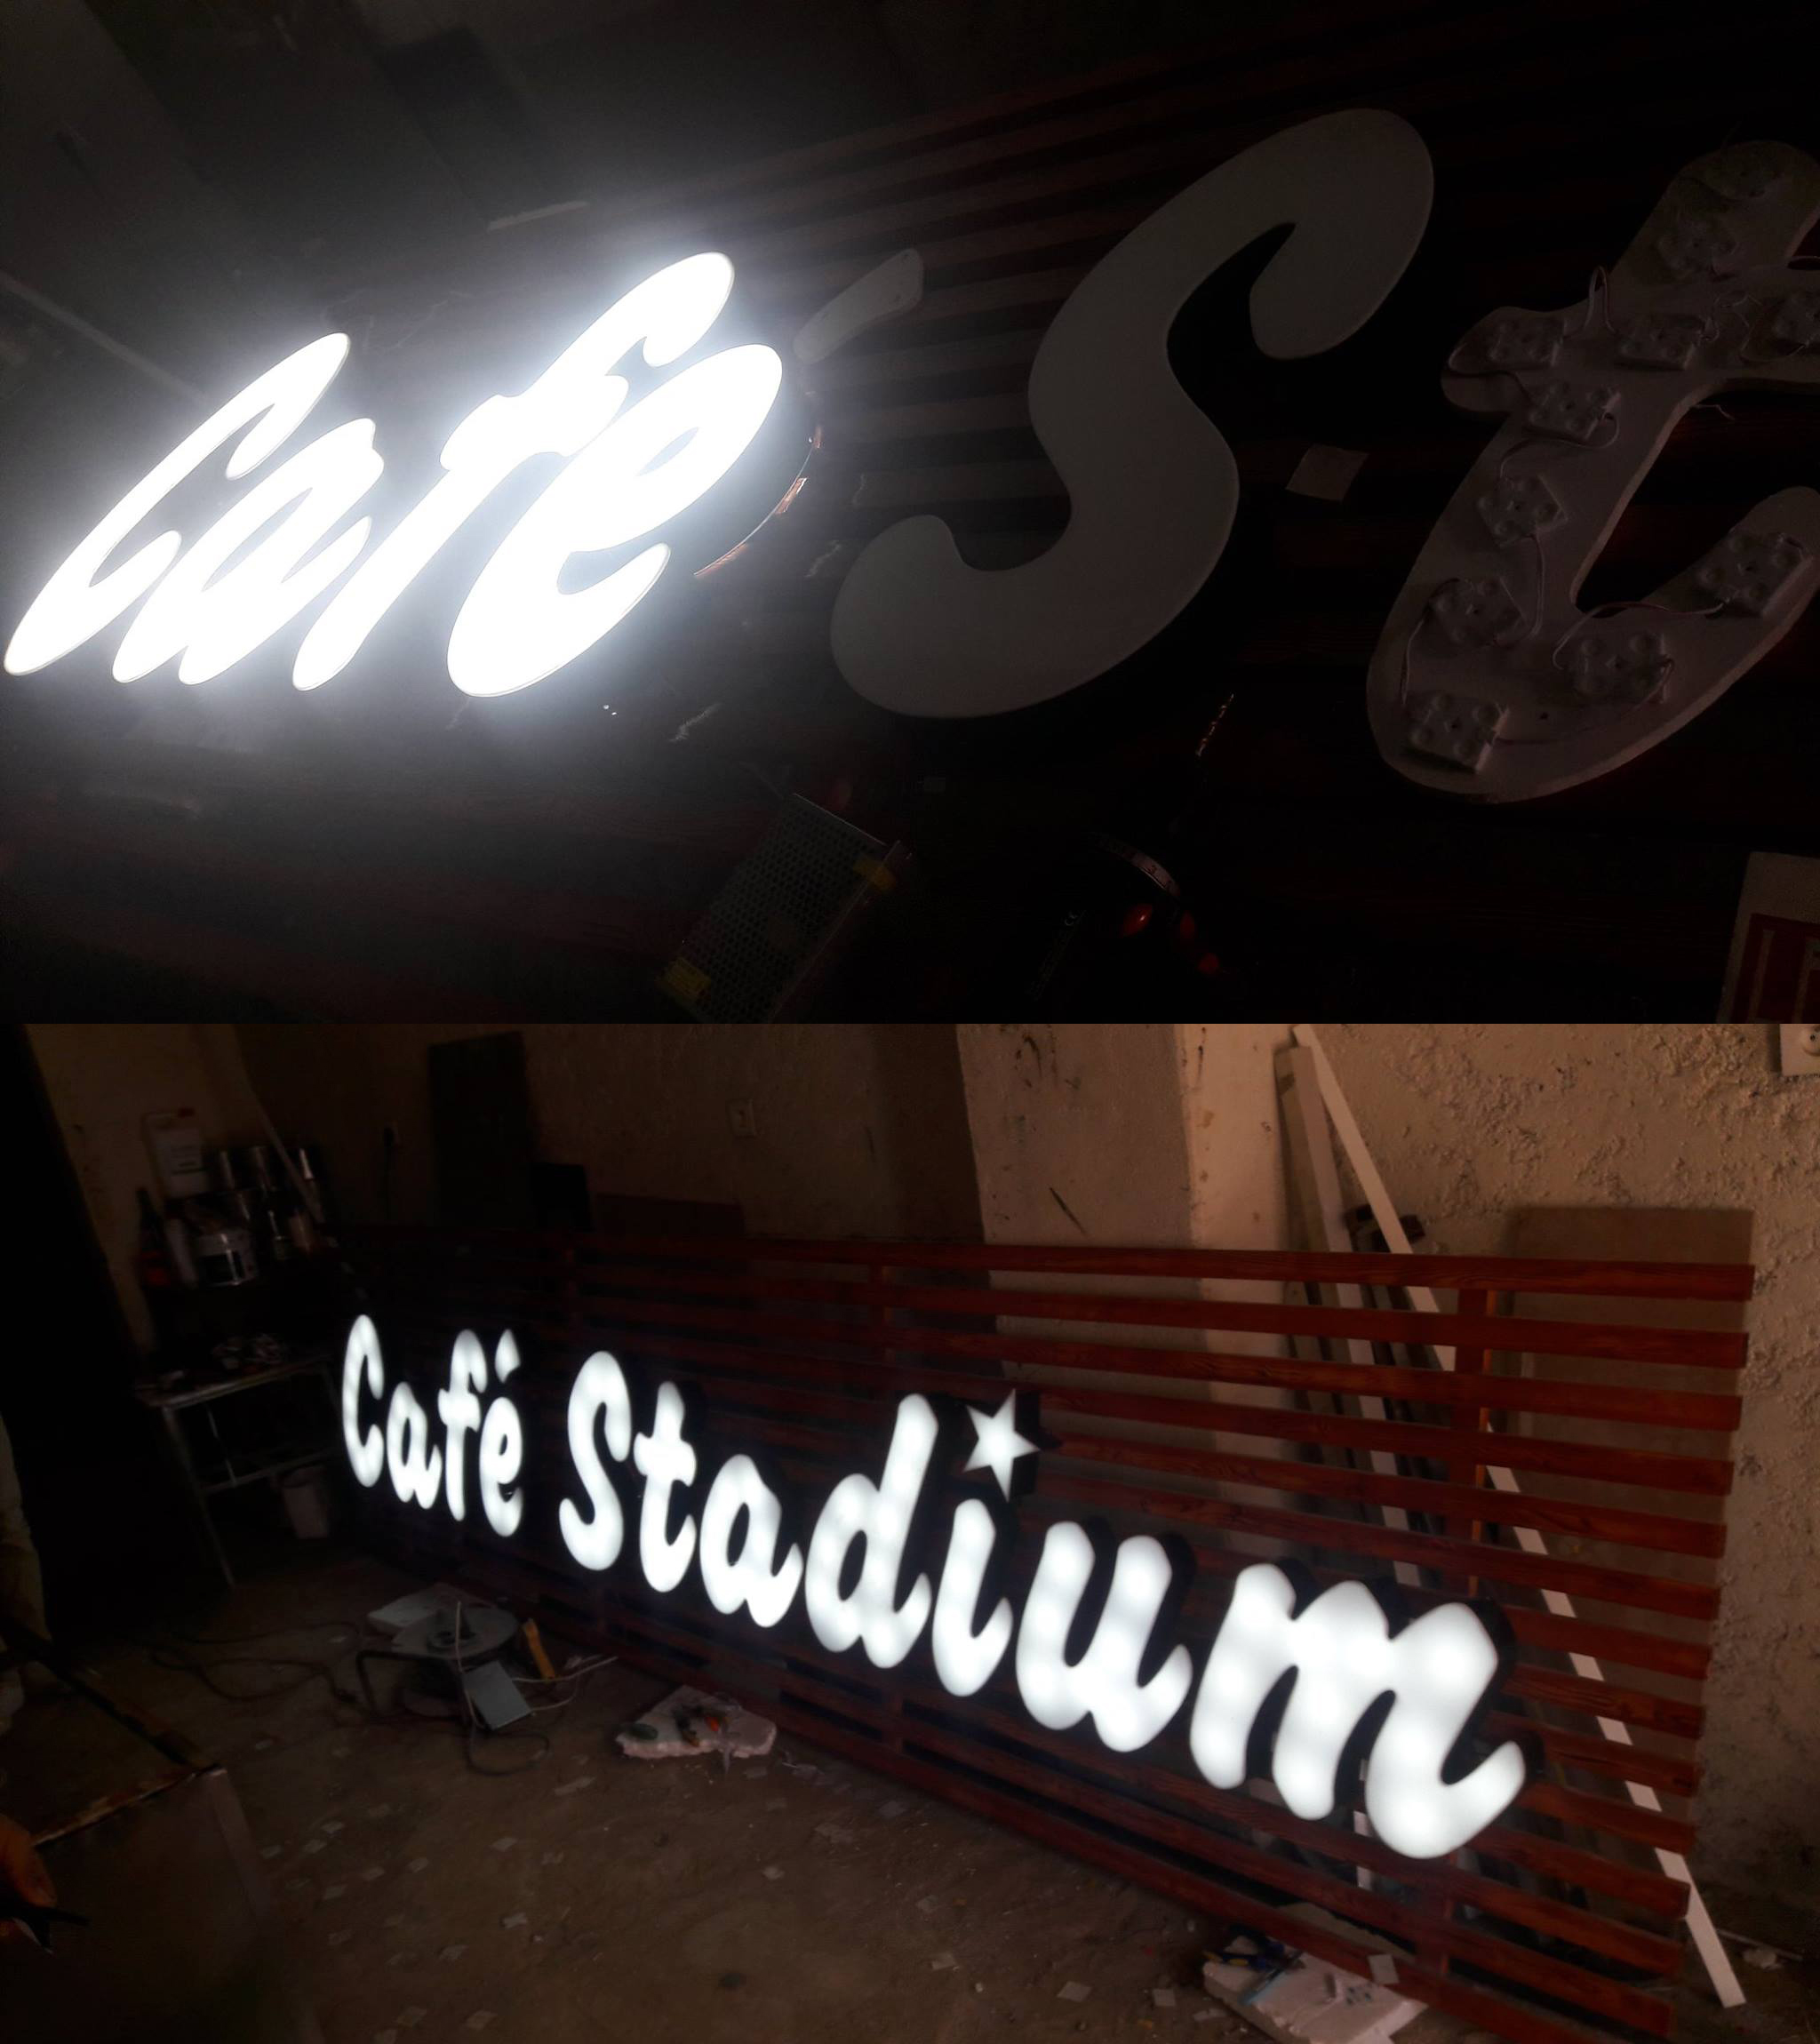 CAFE STADIUM A BEN GUERIR